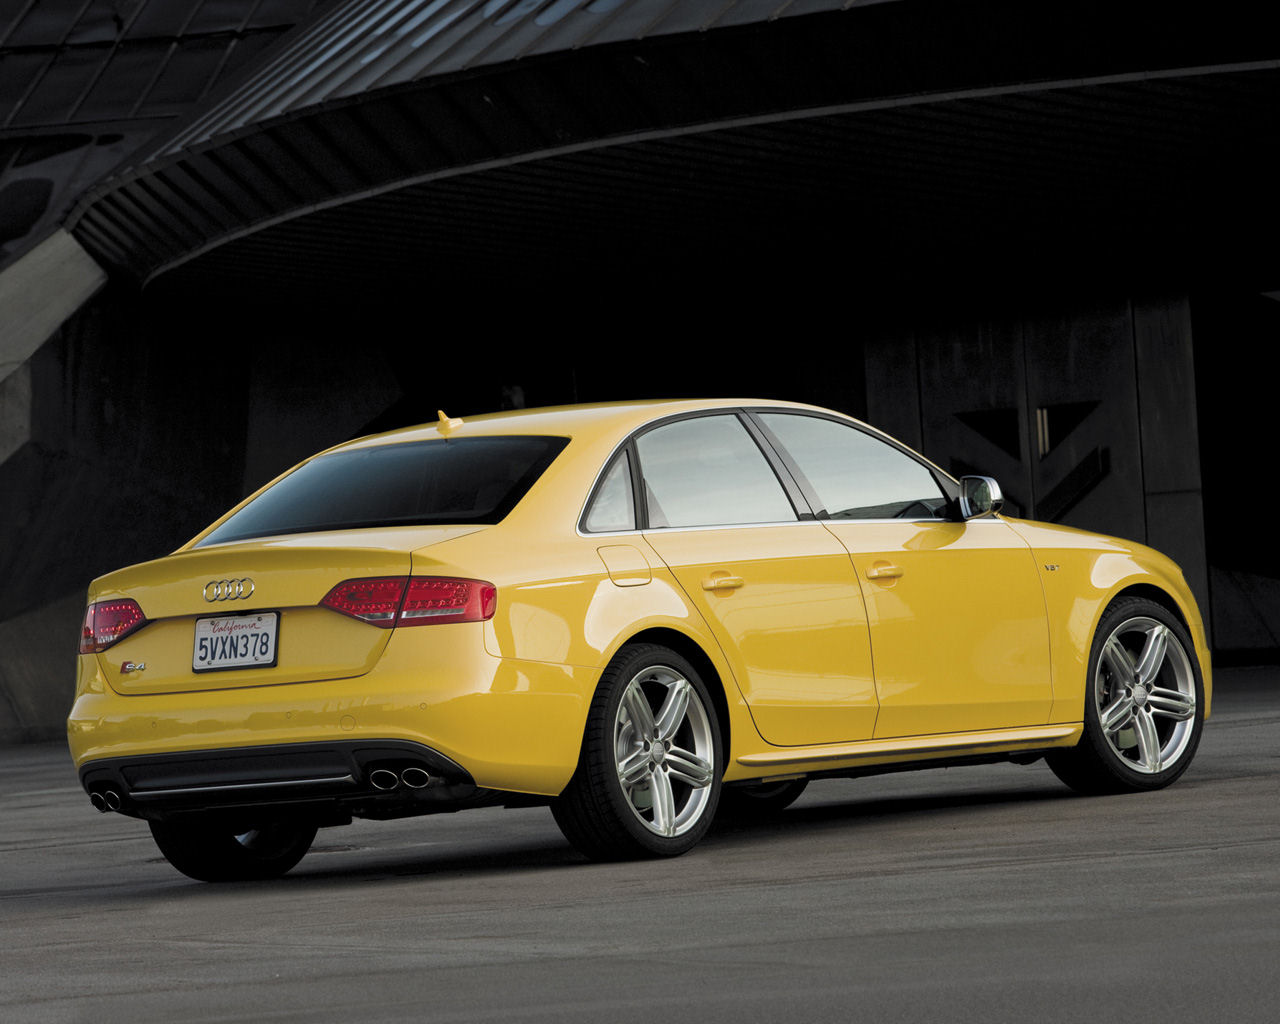 Audi > Audi A4 > Audi A4 Desktop Wallpapers > Widescreen Wallpaper